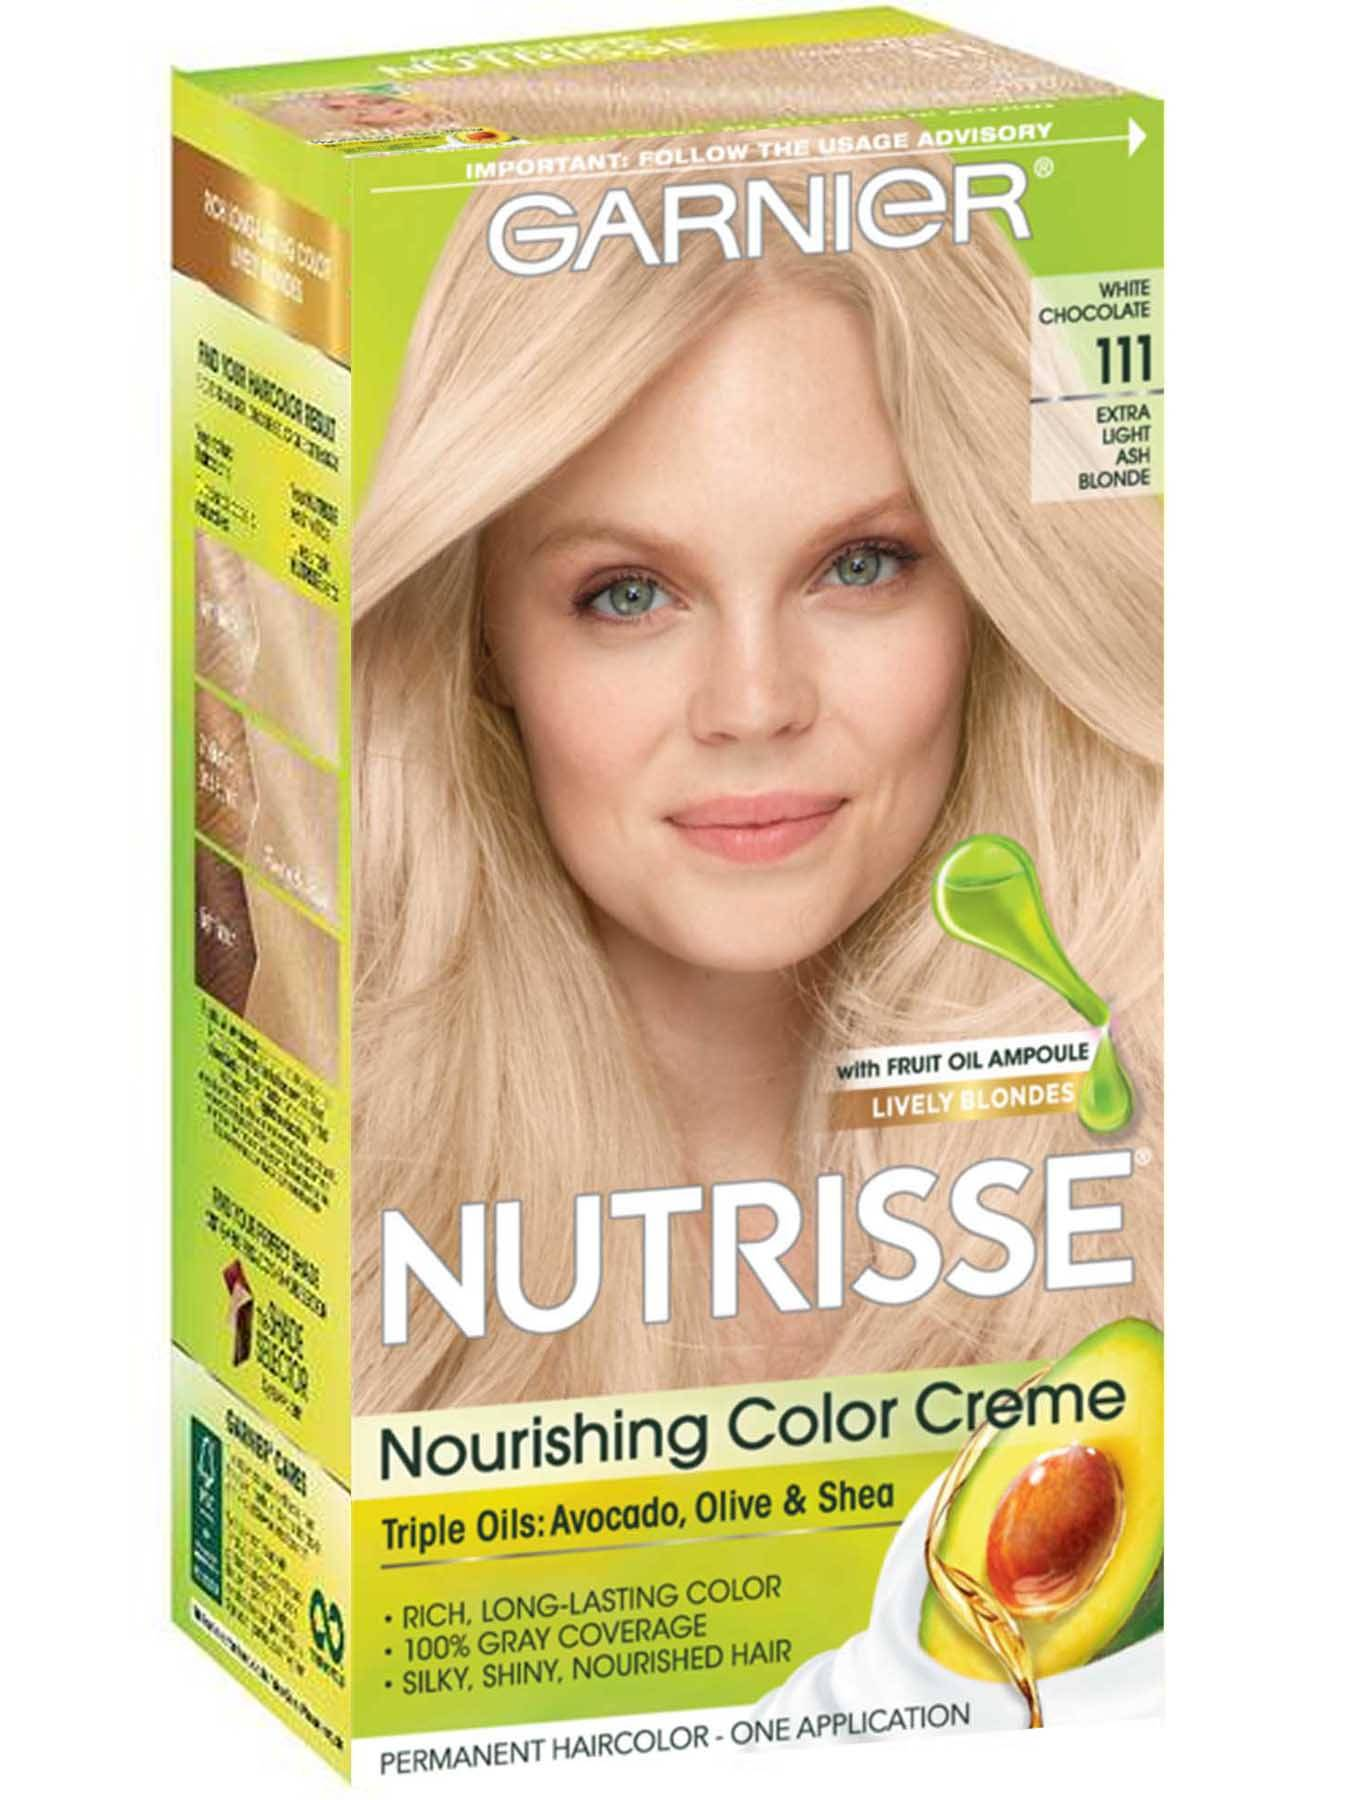 Nutrisse Nourishing Color Creme Extra Light Ash Blonde 111 Garnier